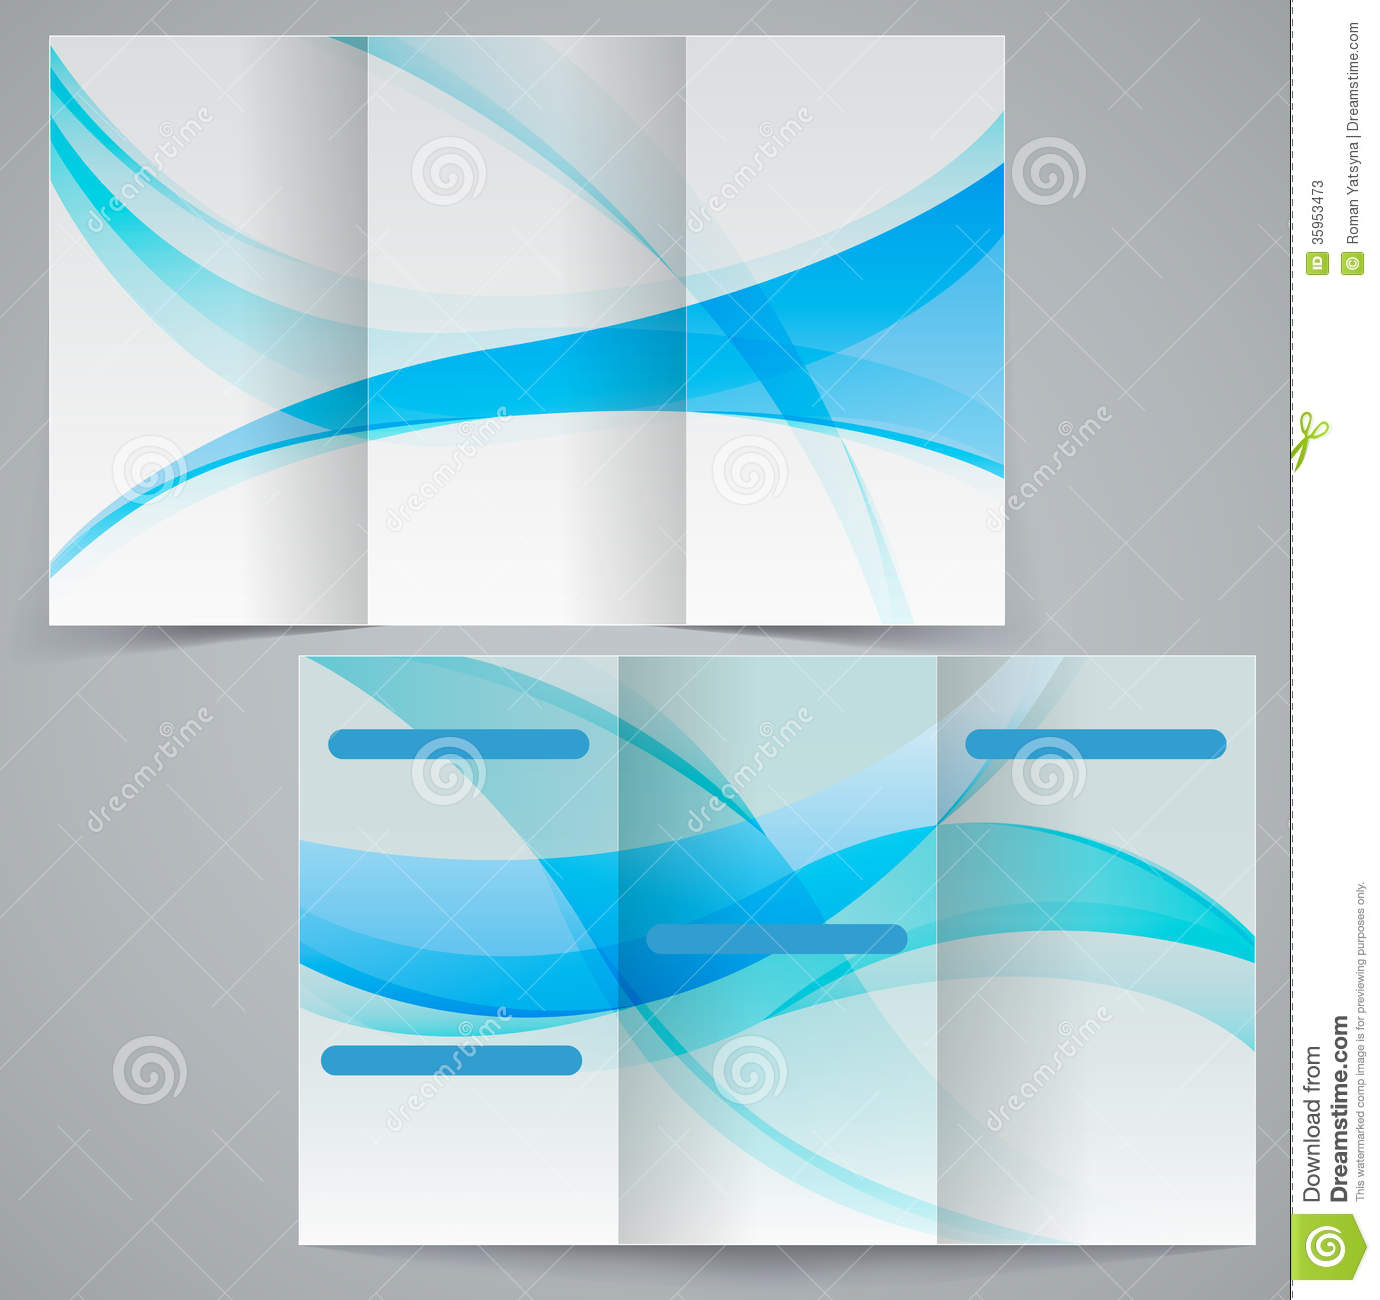 brochure flyer templates - tri fold business brochure template vector blue d stock